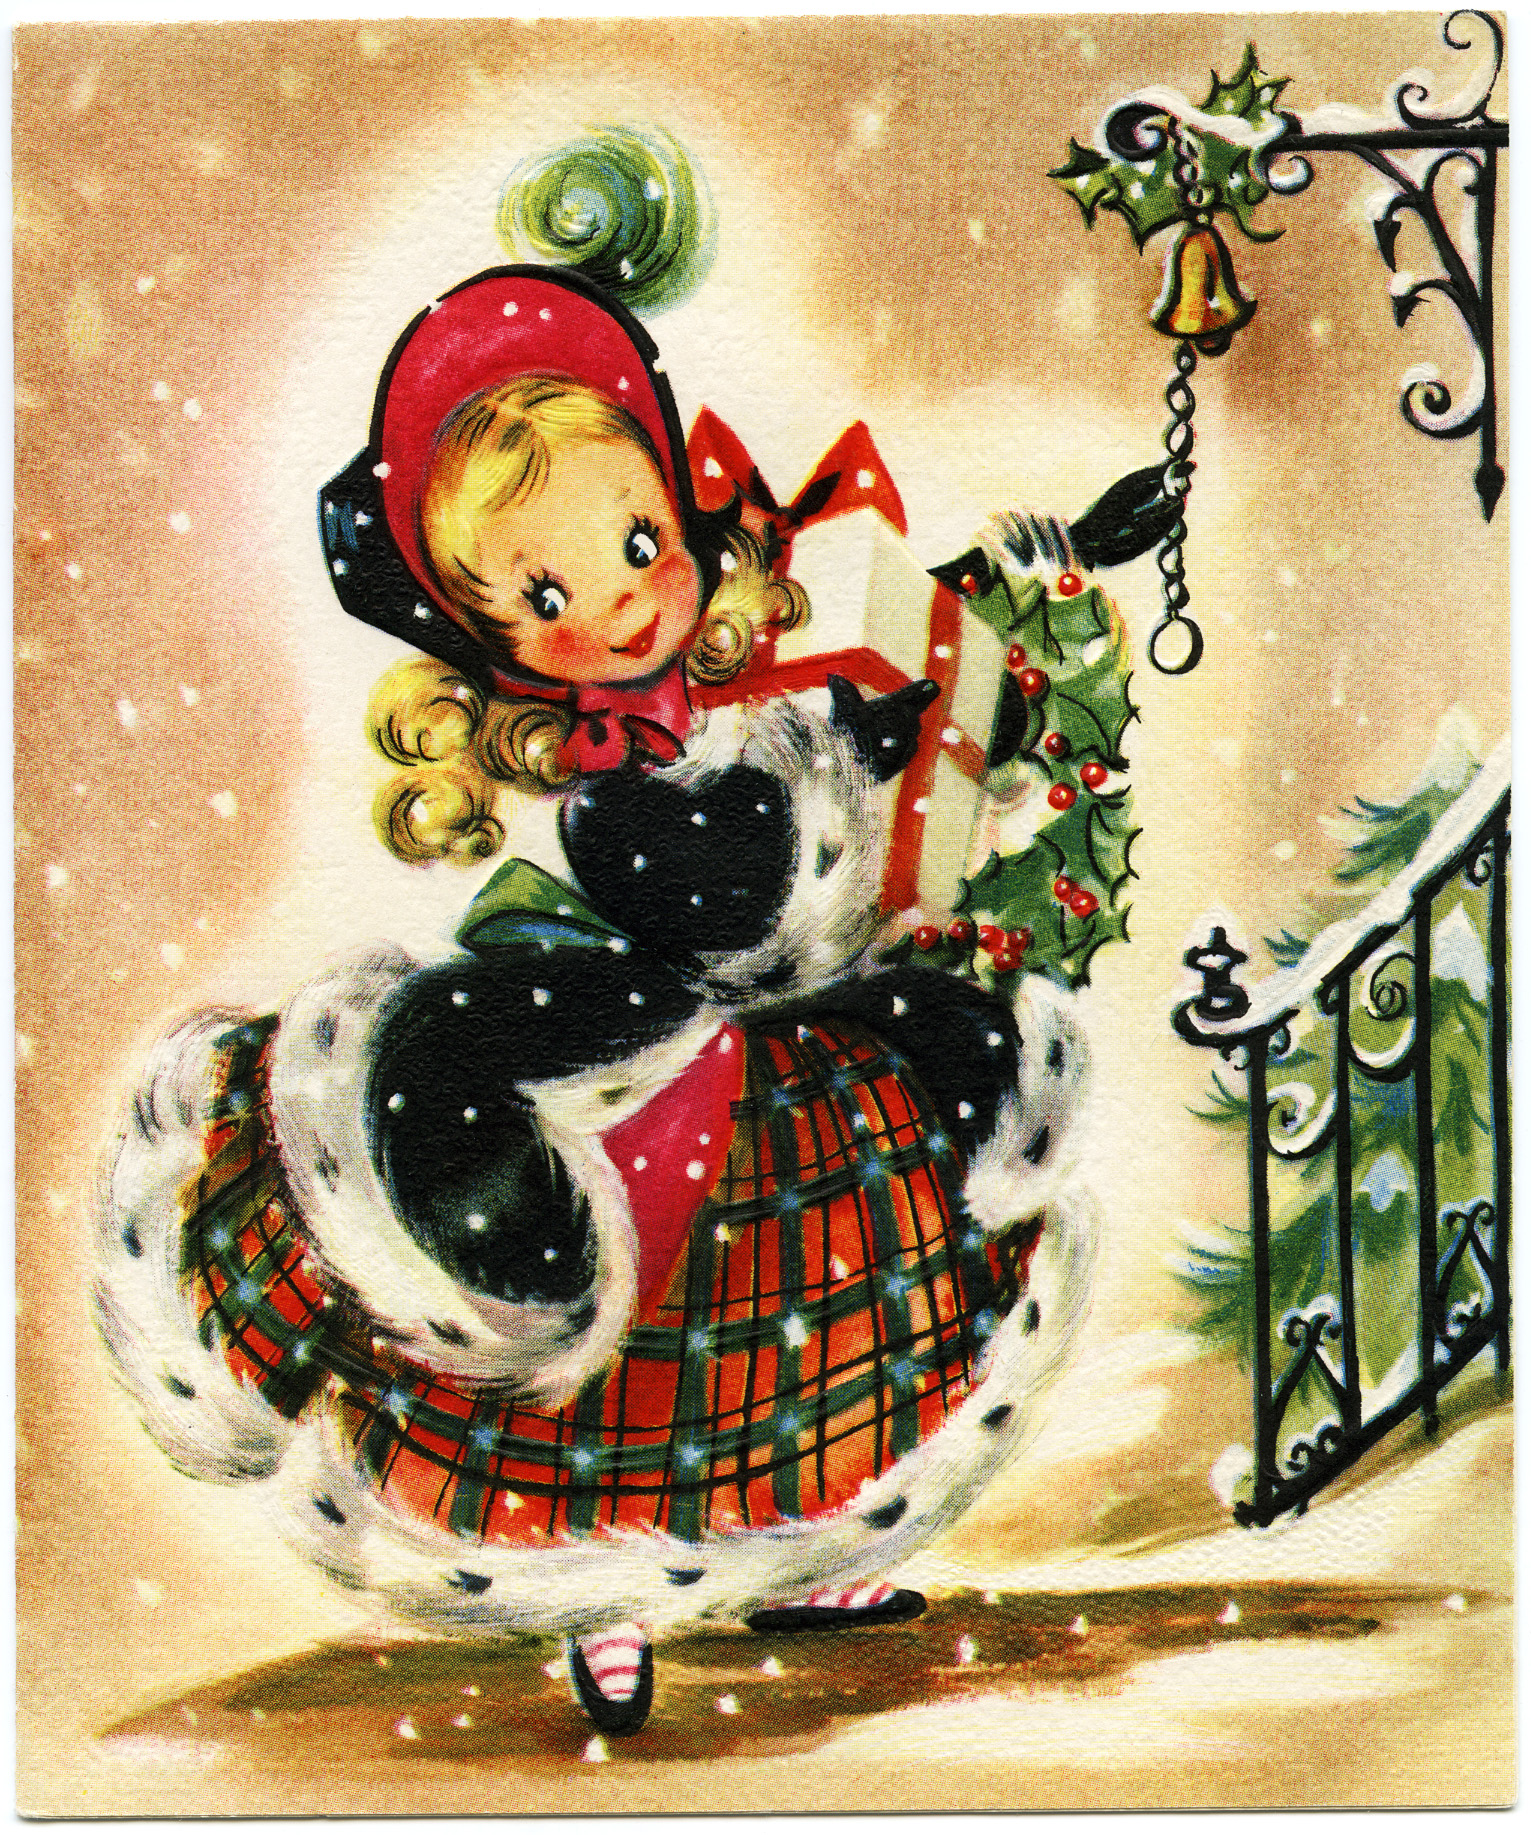 Girl with Gift Vintage Christmas Card.